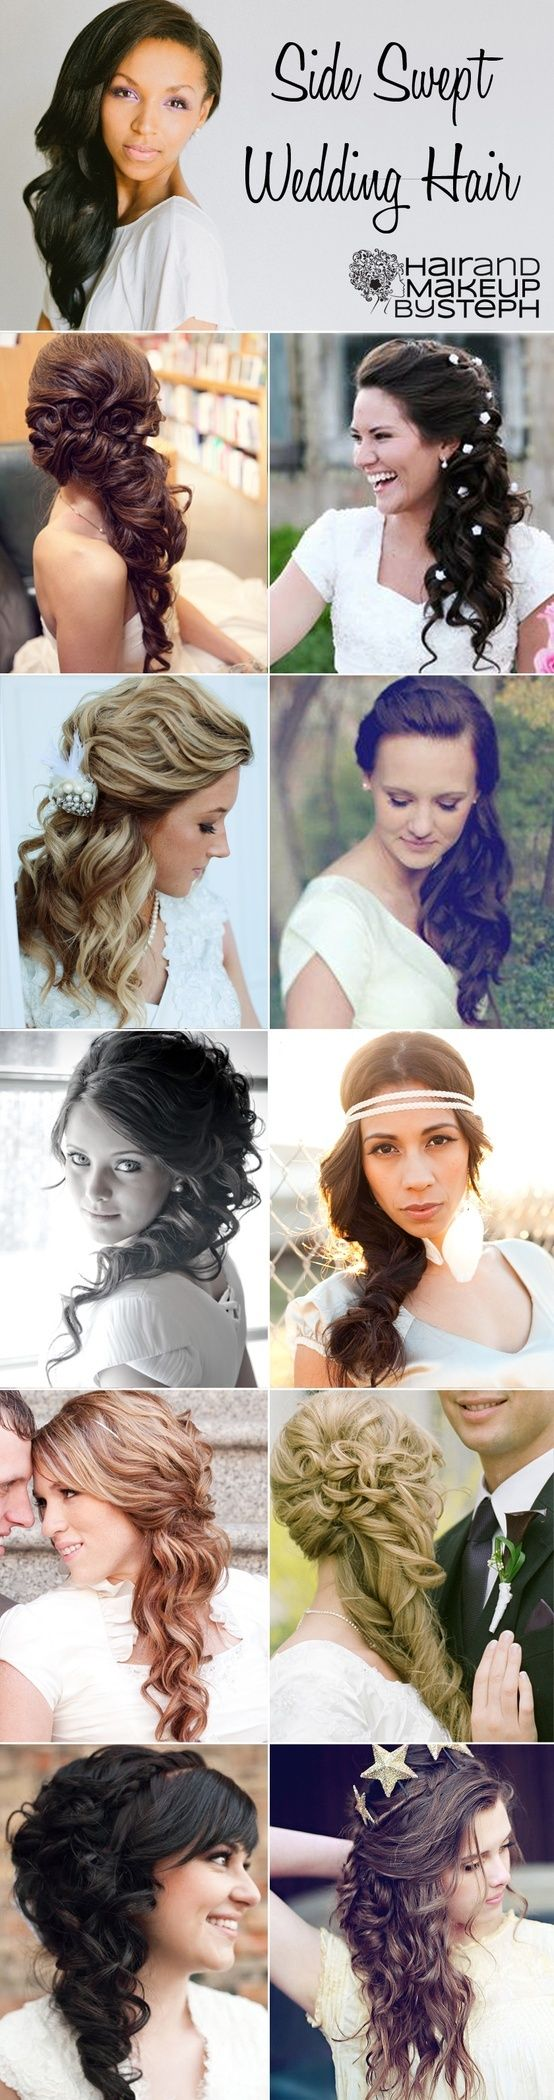 I'm not sure about having side hair, but some of these are definitely gorgeous.